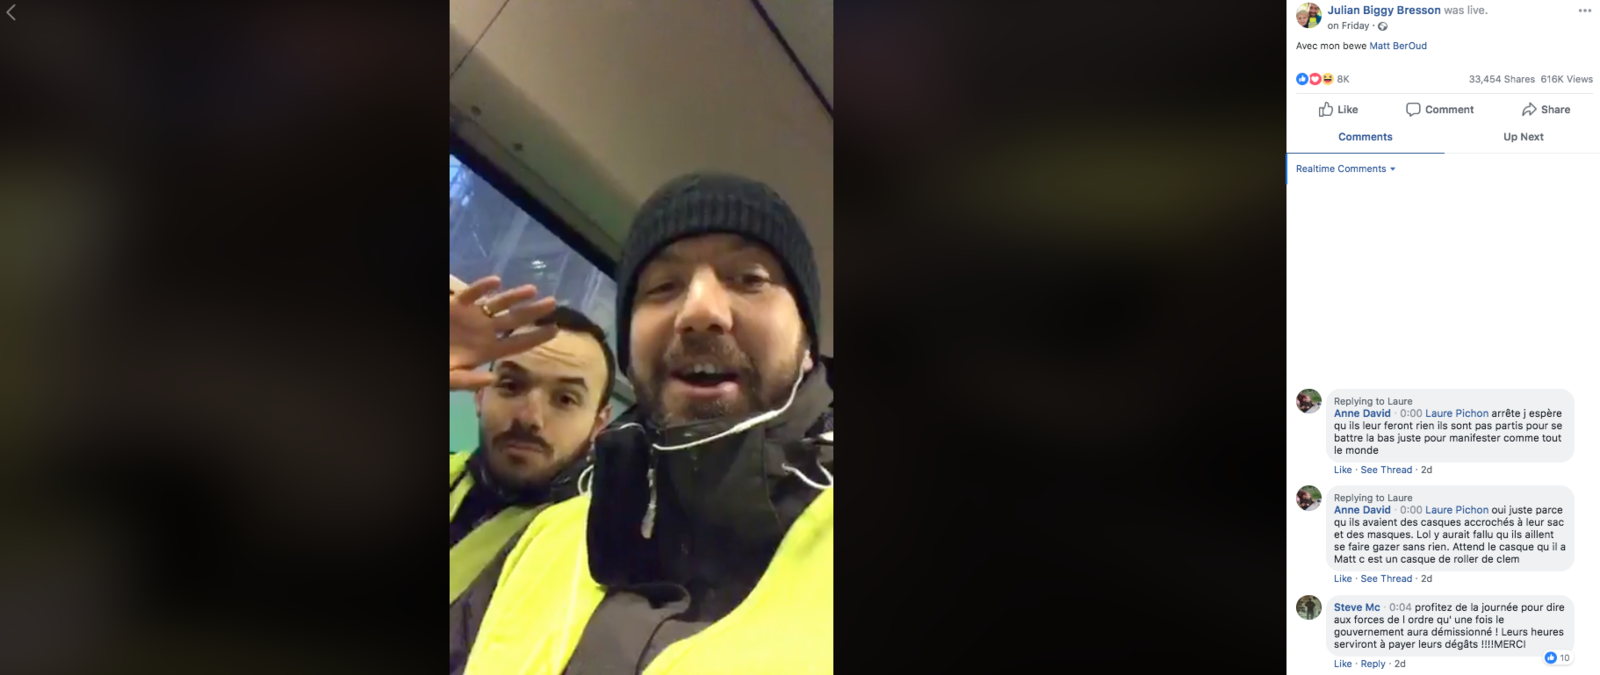 A demonstrator named Julian Bresson goes live on Facebook from a police van after being arrested before the protests on Saturday.